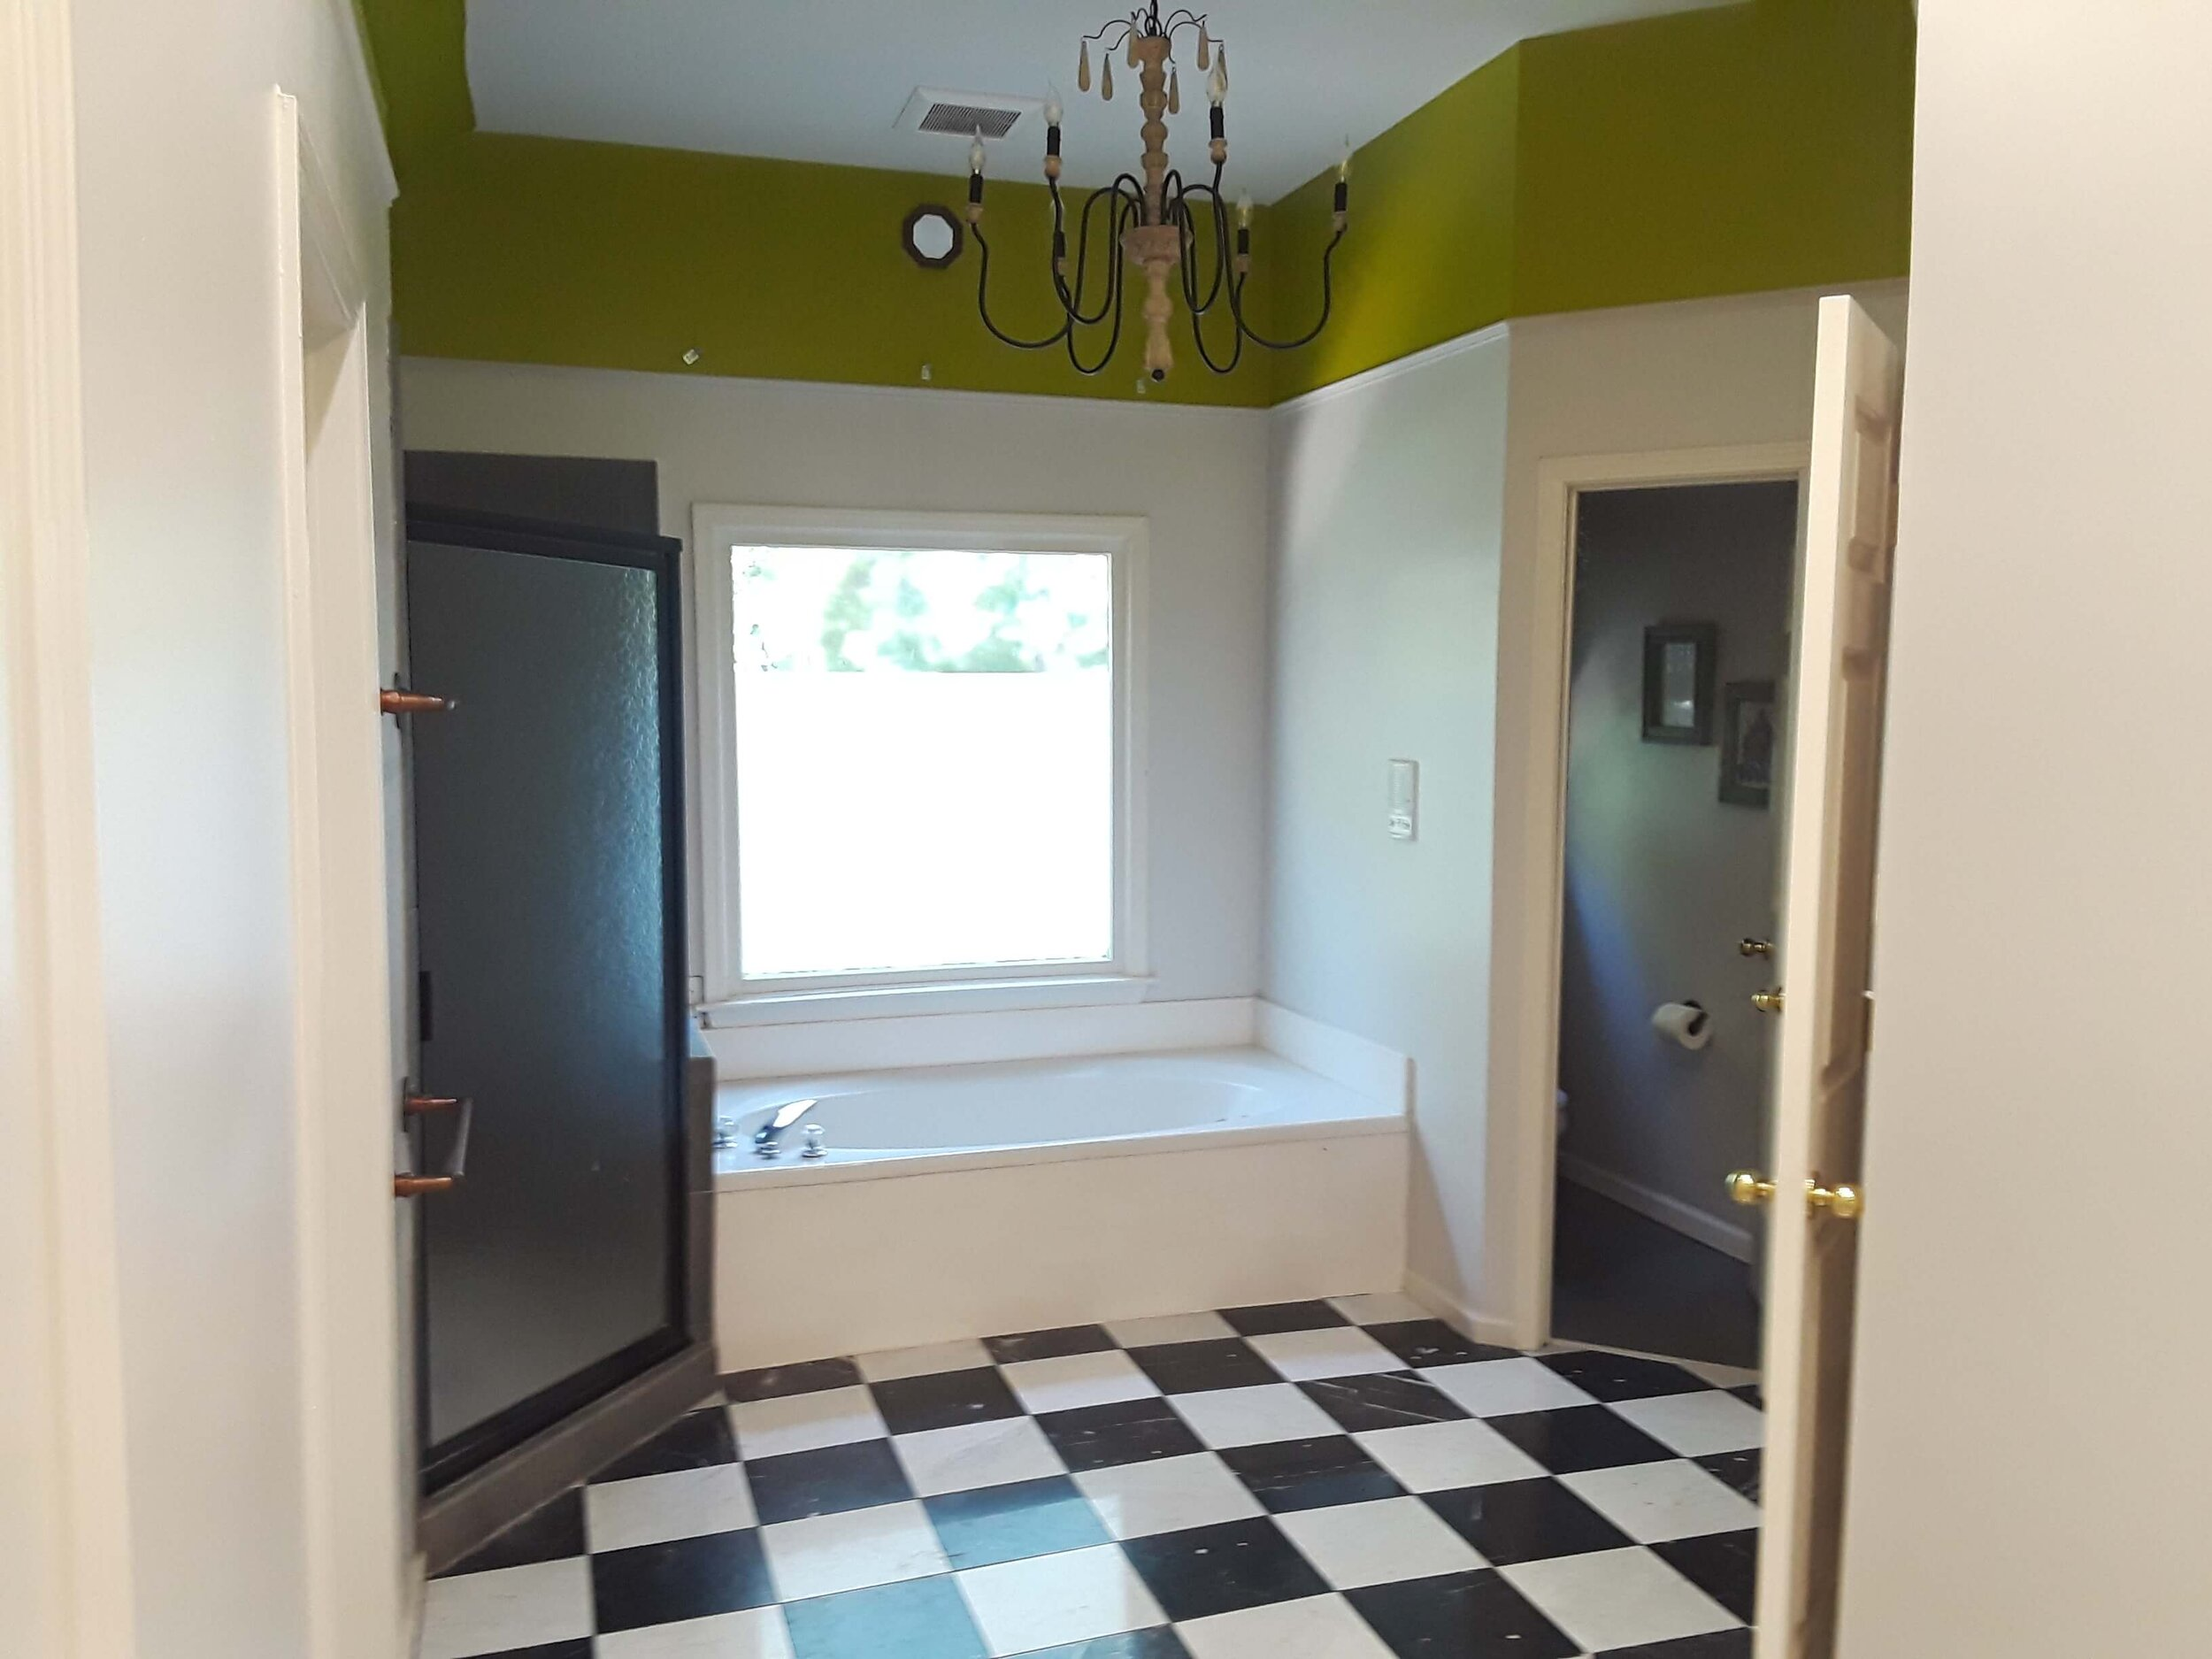 BEFORE REMODEL - This bathroom was going to be remodeled with a new tile floor, clear glass shower enclosure and different tile around the tub. What would work best here? #designconsultation #bathroomdesign #bathroomtile